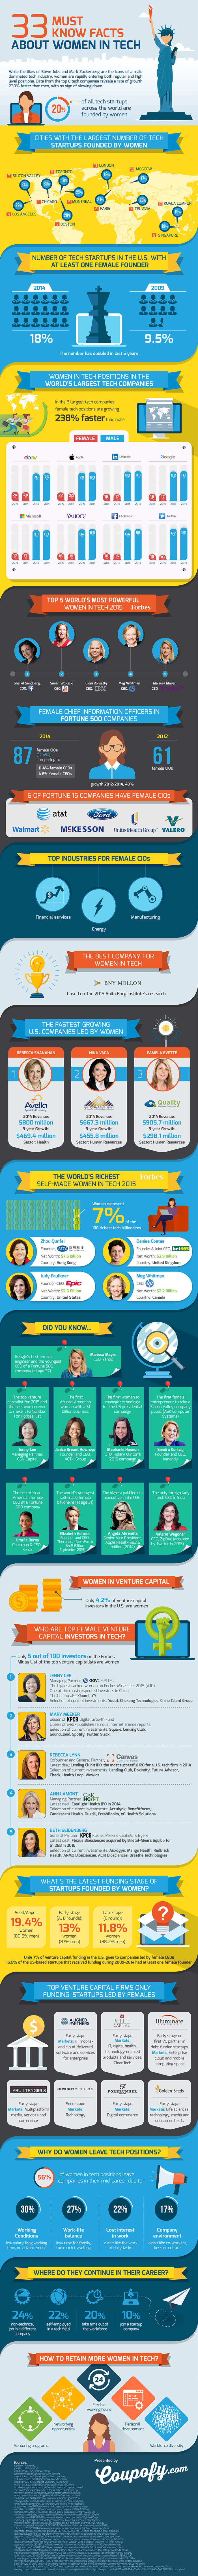 Women-in-Tech_Infographic_updated_Nov15